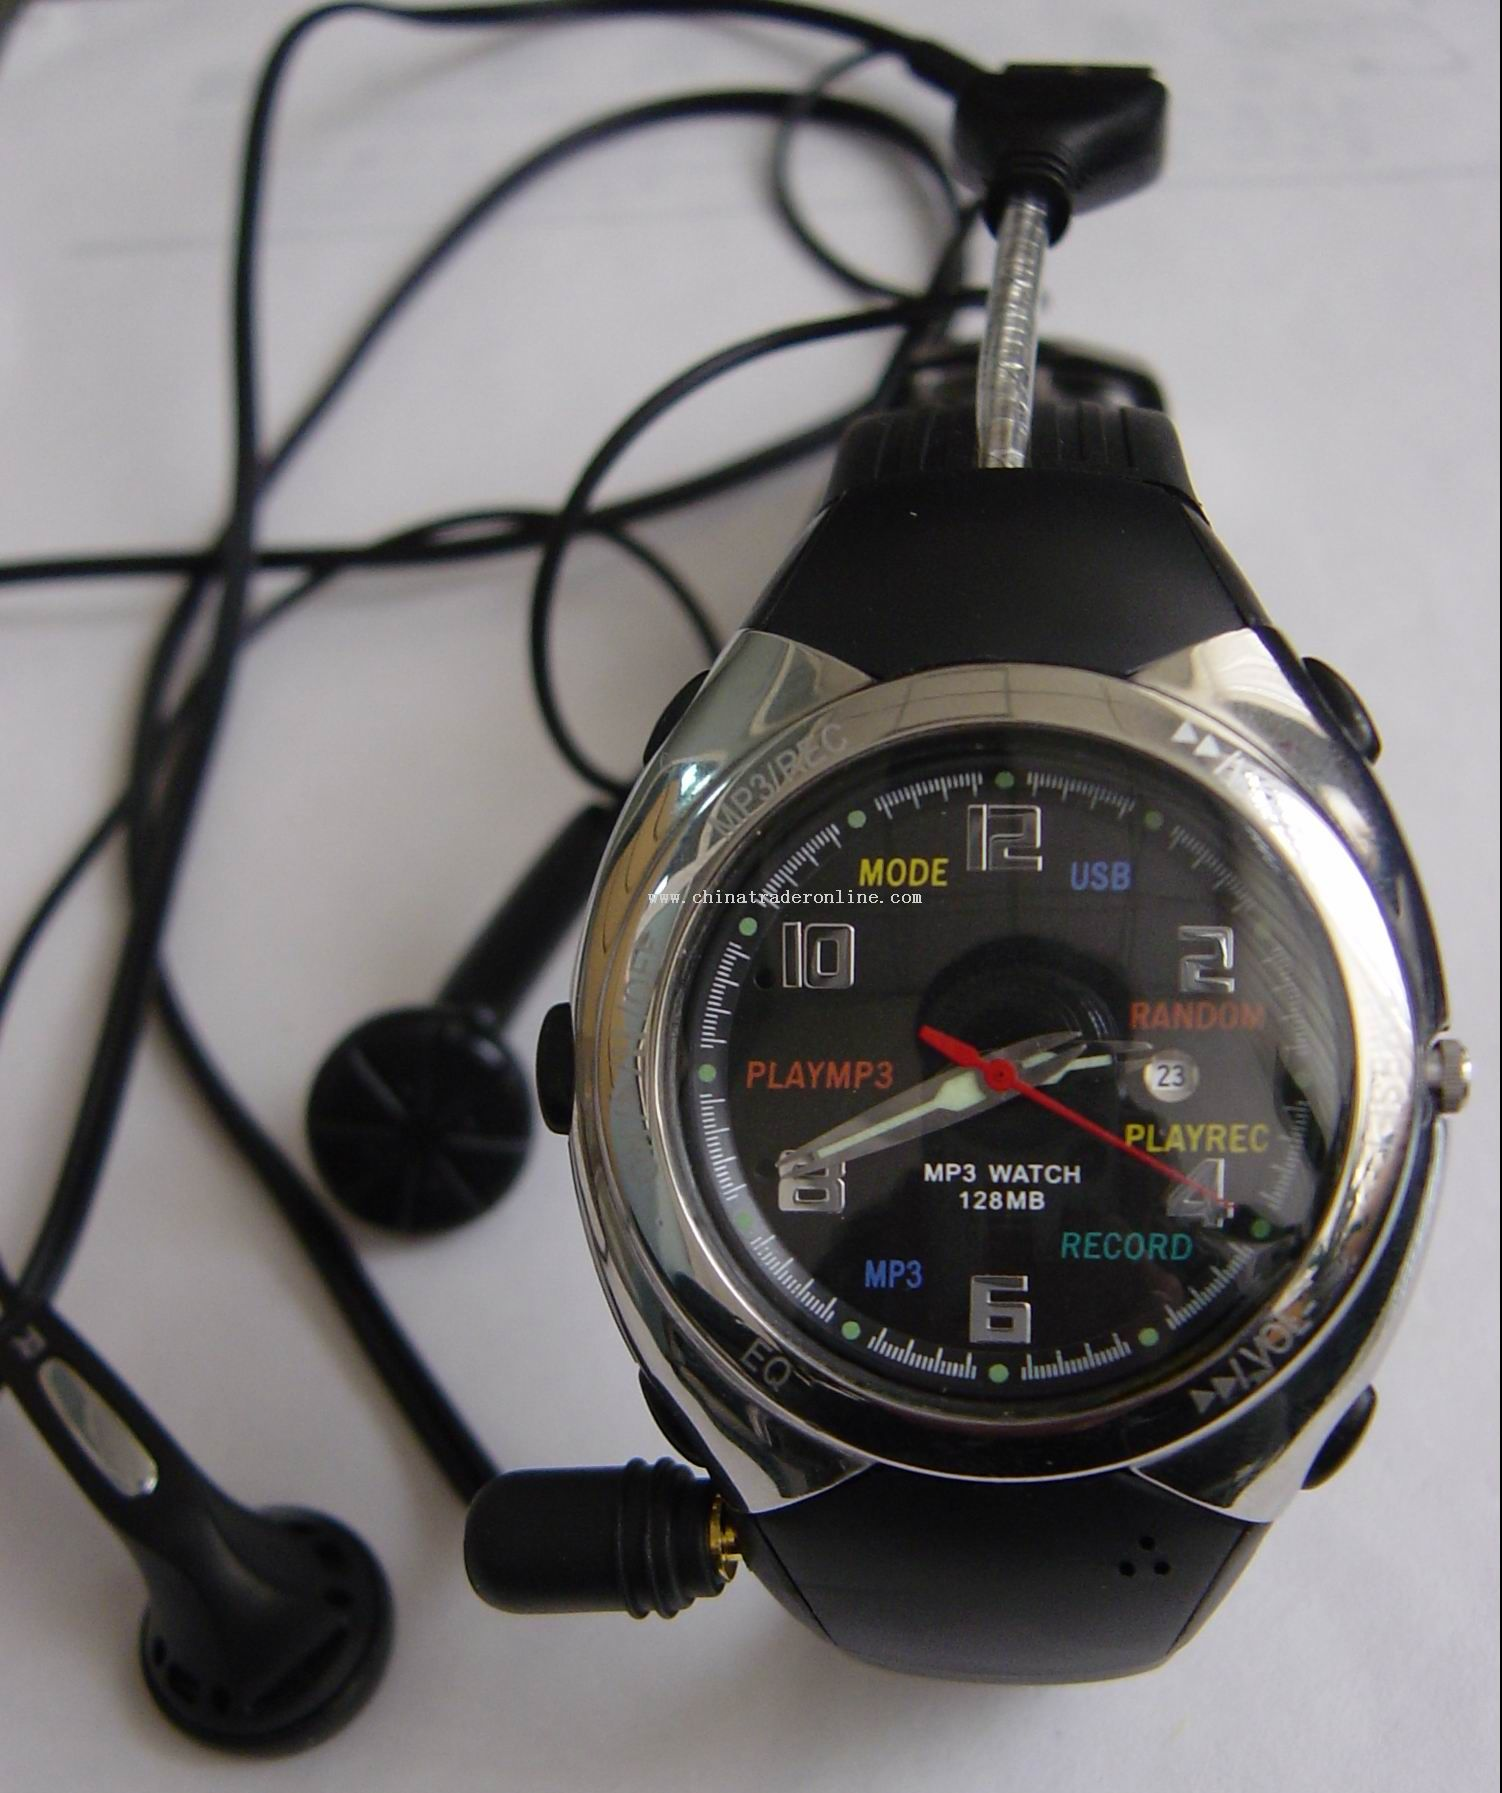 MP3 WATCH from China